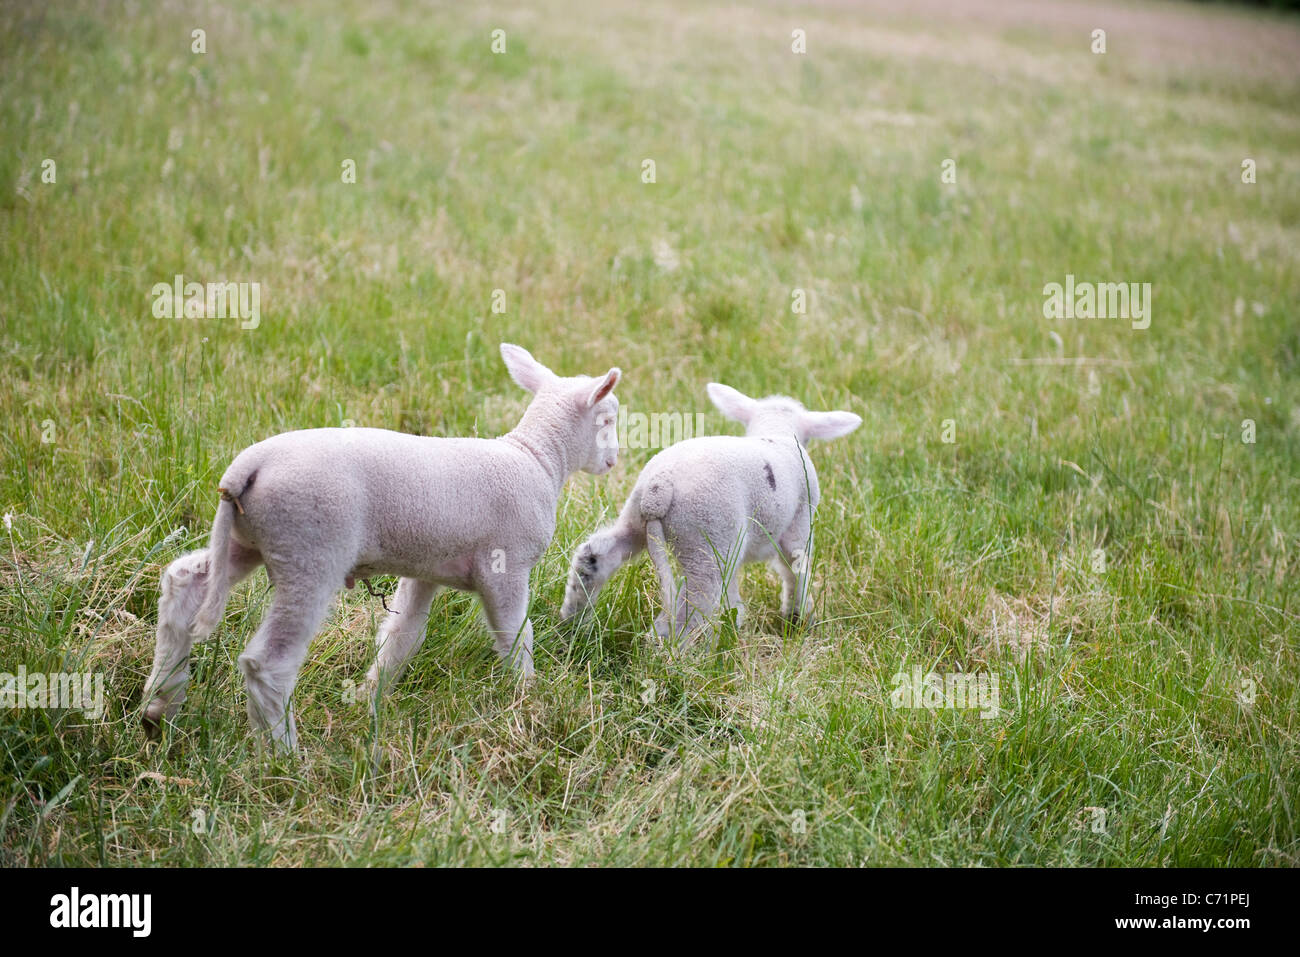 Lambs in pasture - Stock Image